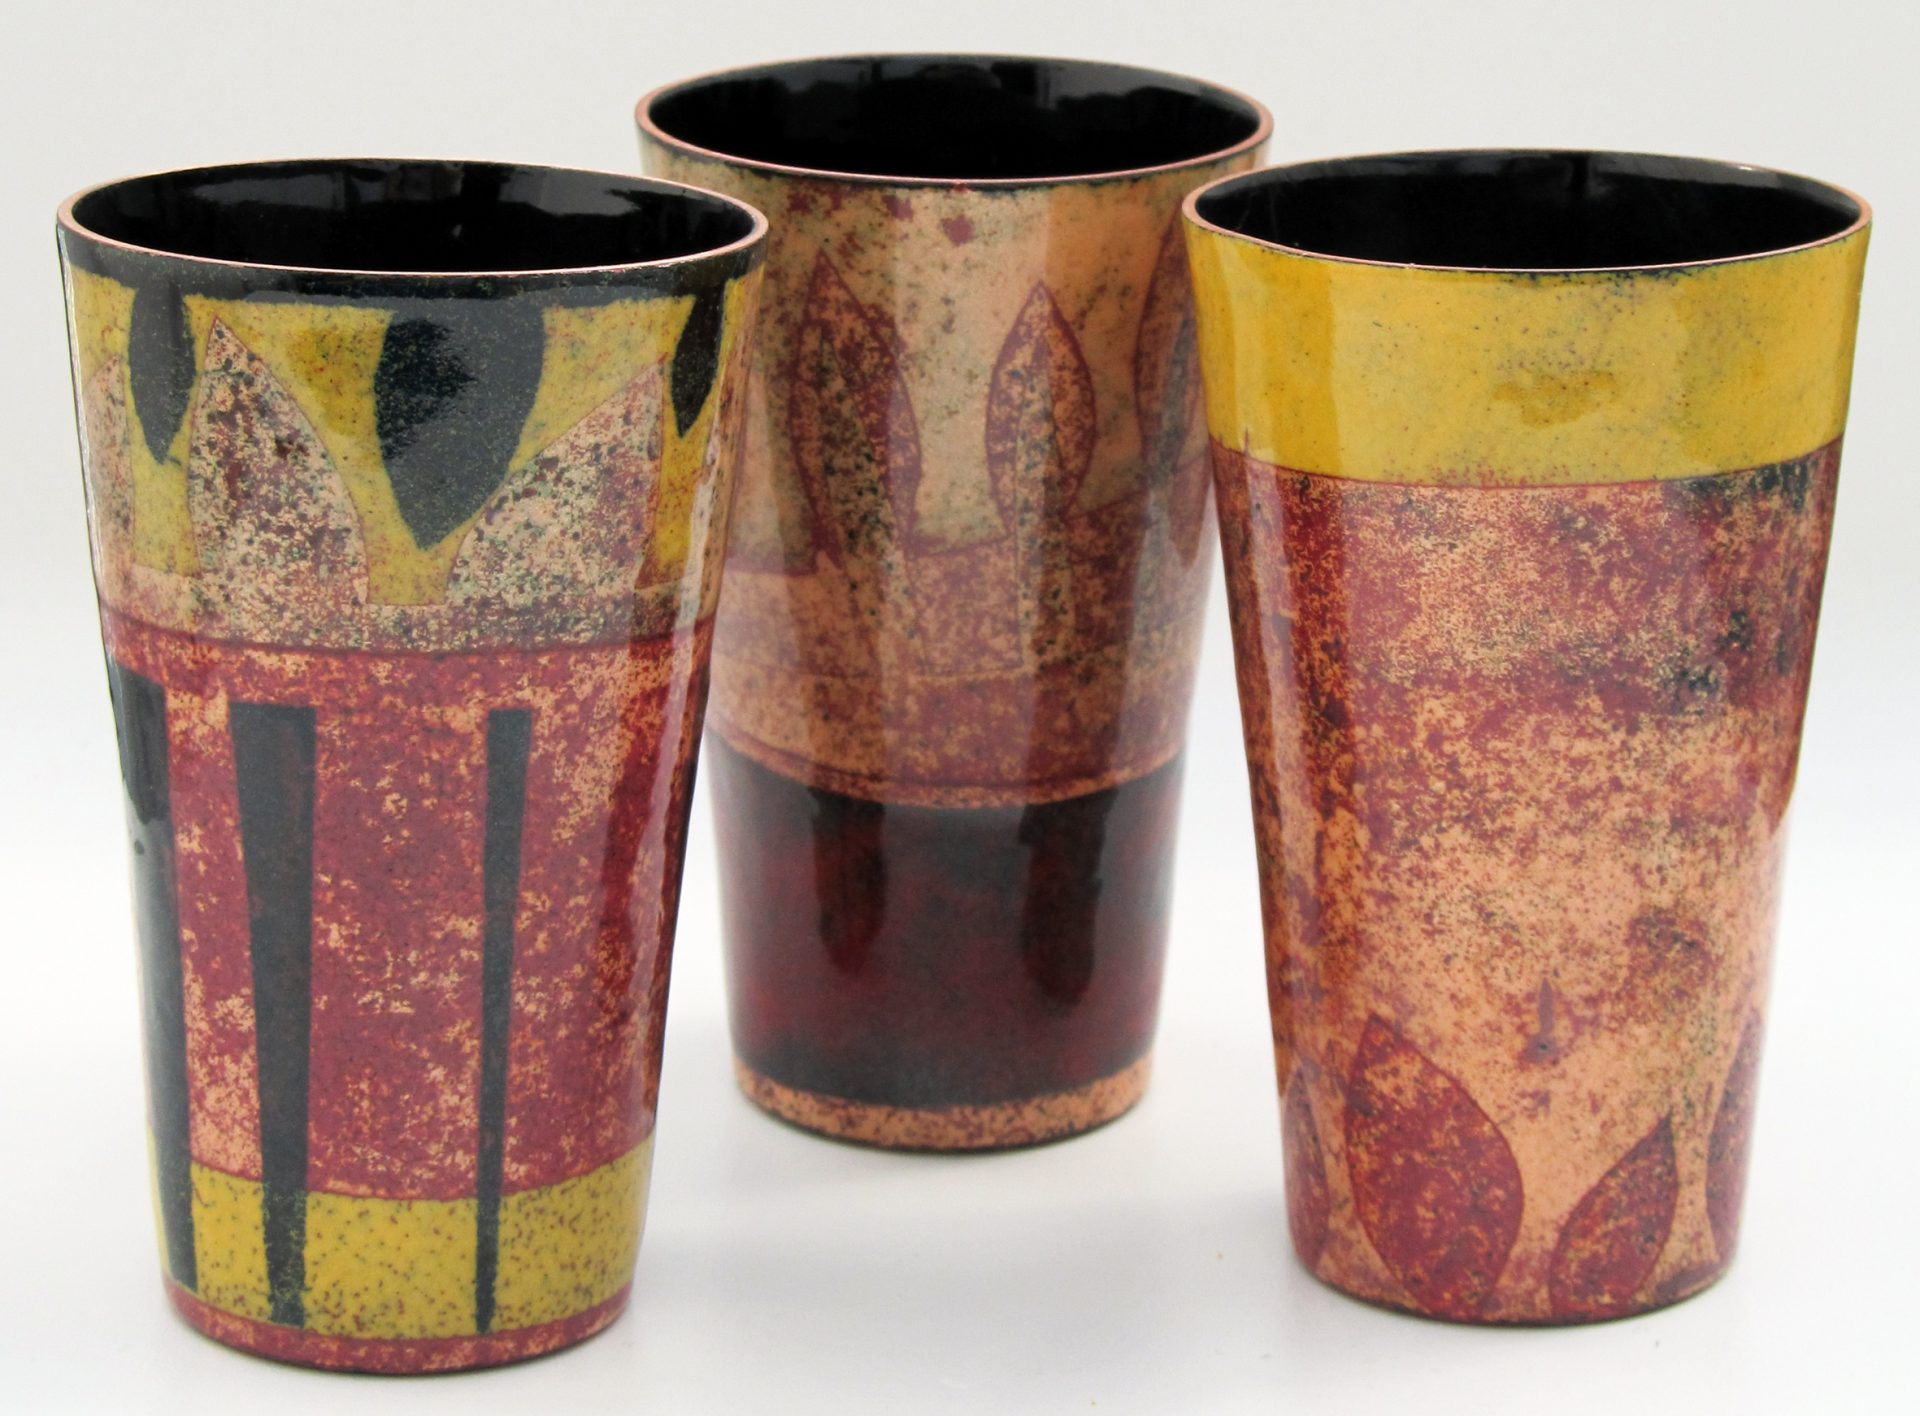 Enamelled vessels